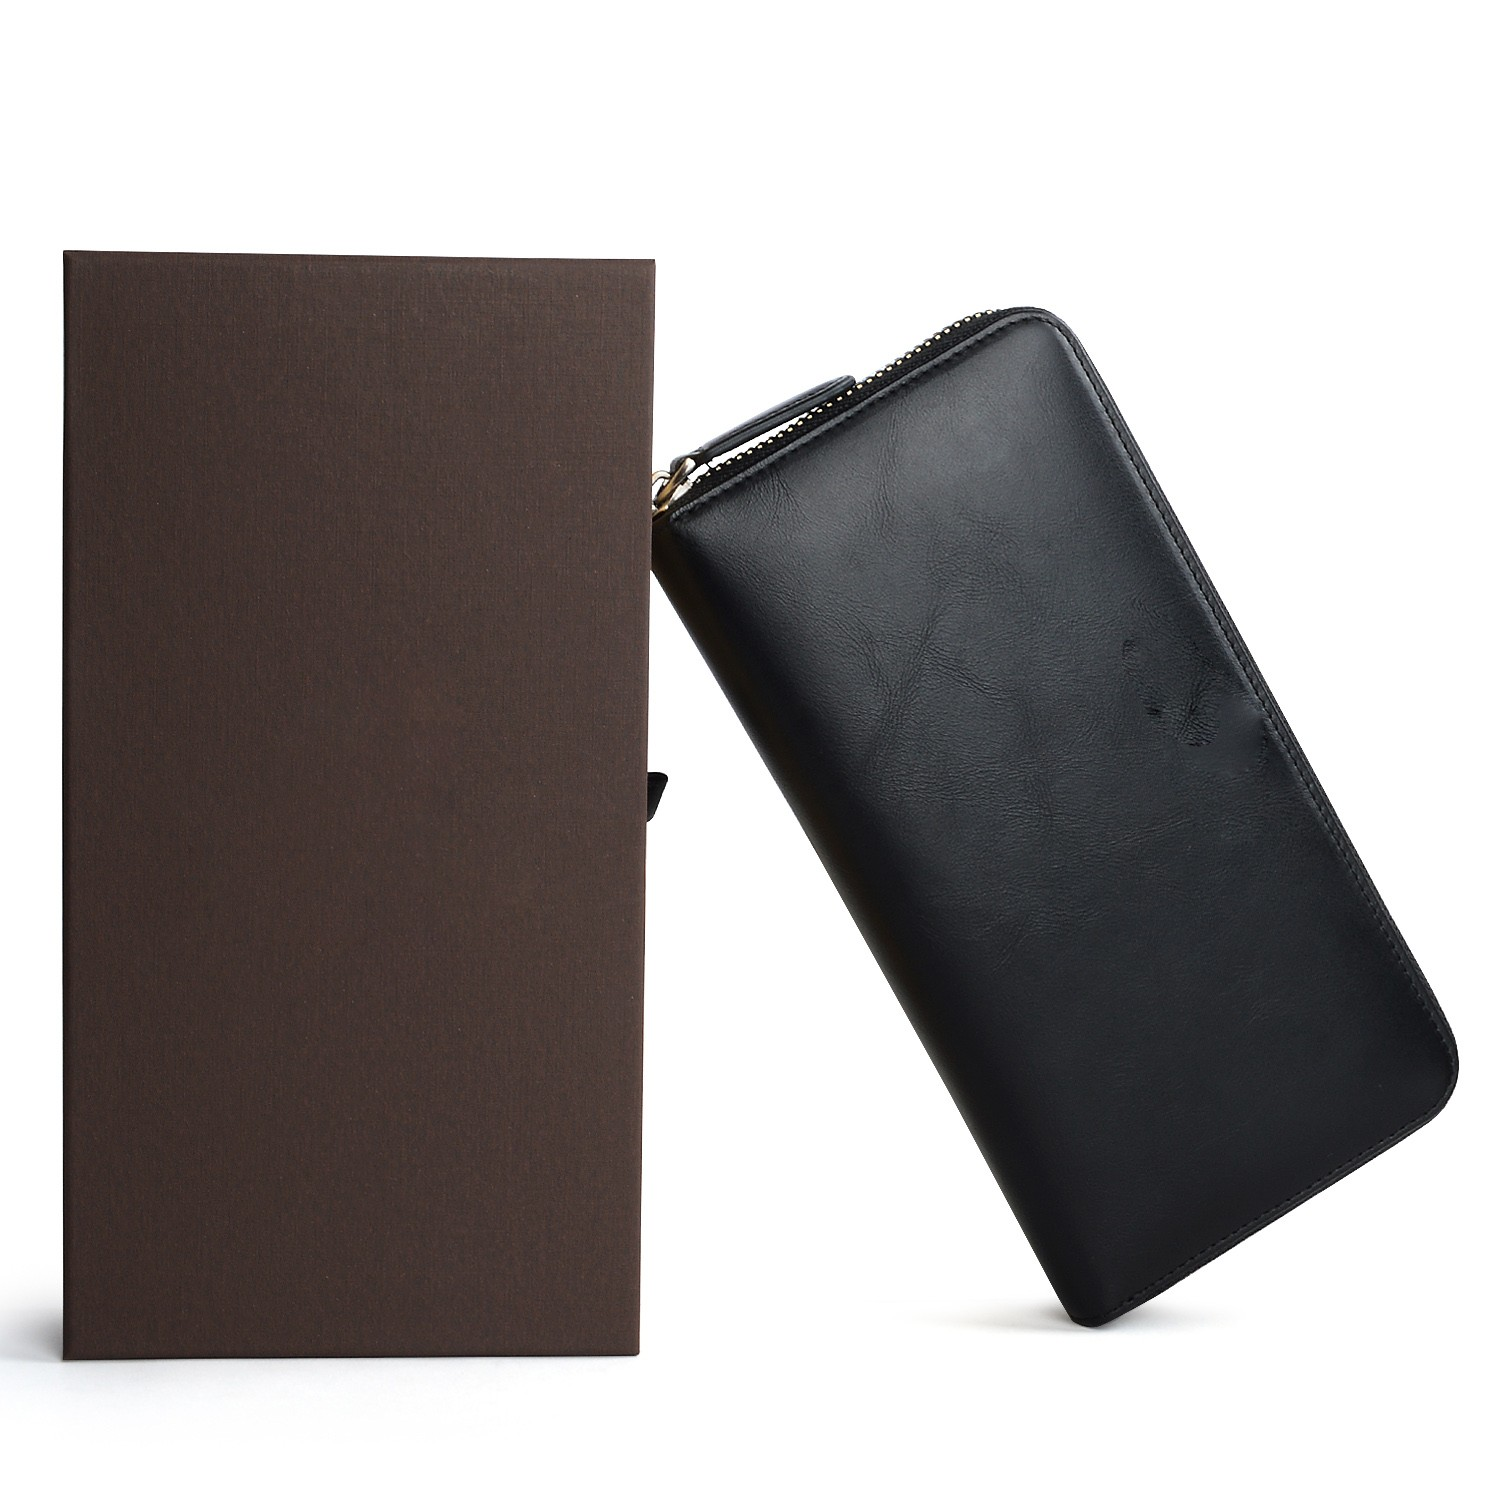 AIVI reliable leather card holder wallet factory for iphone XS-8